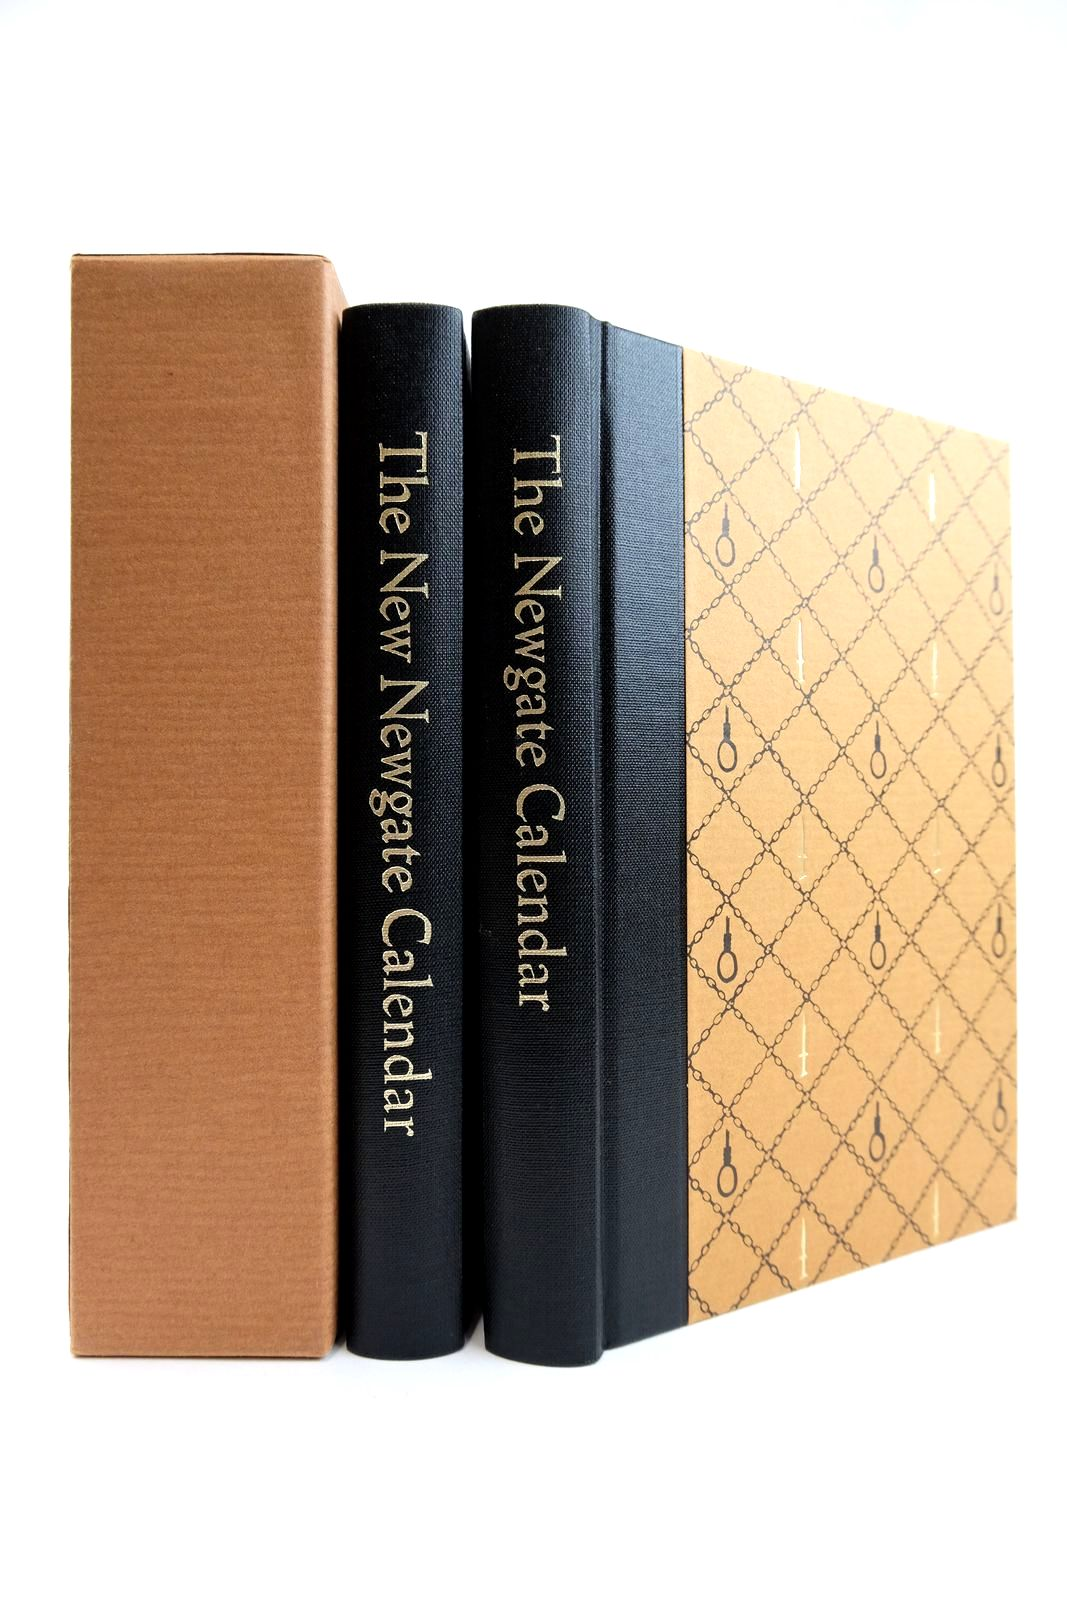 Photo of THE NEWGATE CALENDAR & THE NEW NEWGATE CALENDAR (2 VOLUMES) written by Birkett, Norman published by Folio Society (STOCK CODE: 2132395)  for sale by Stella & Rose's Books